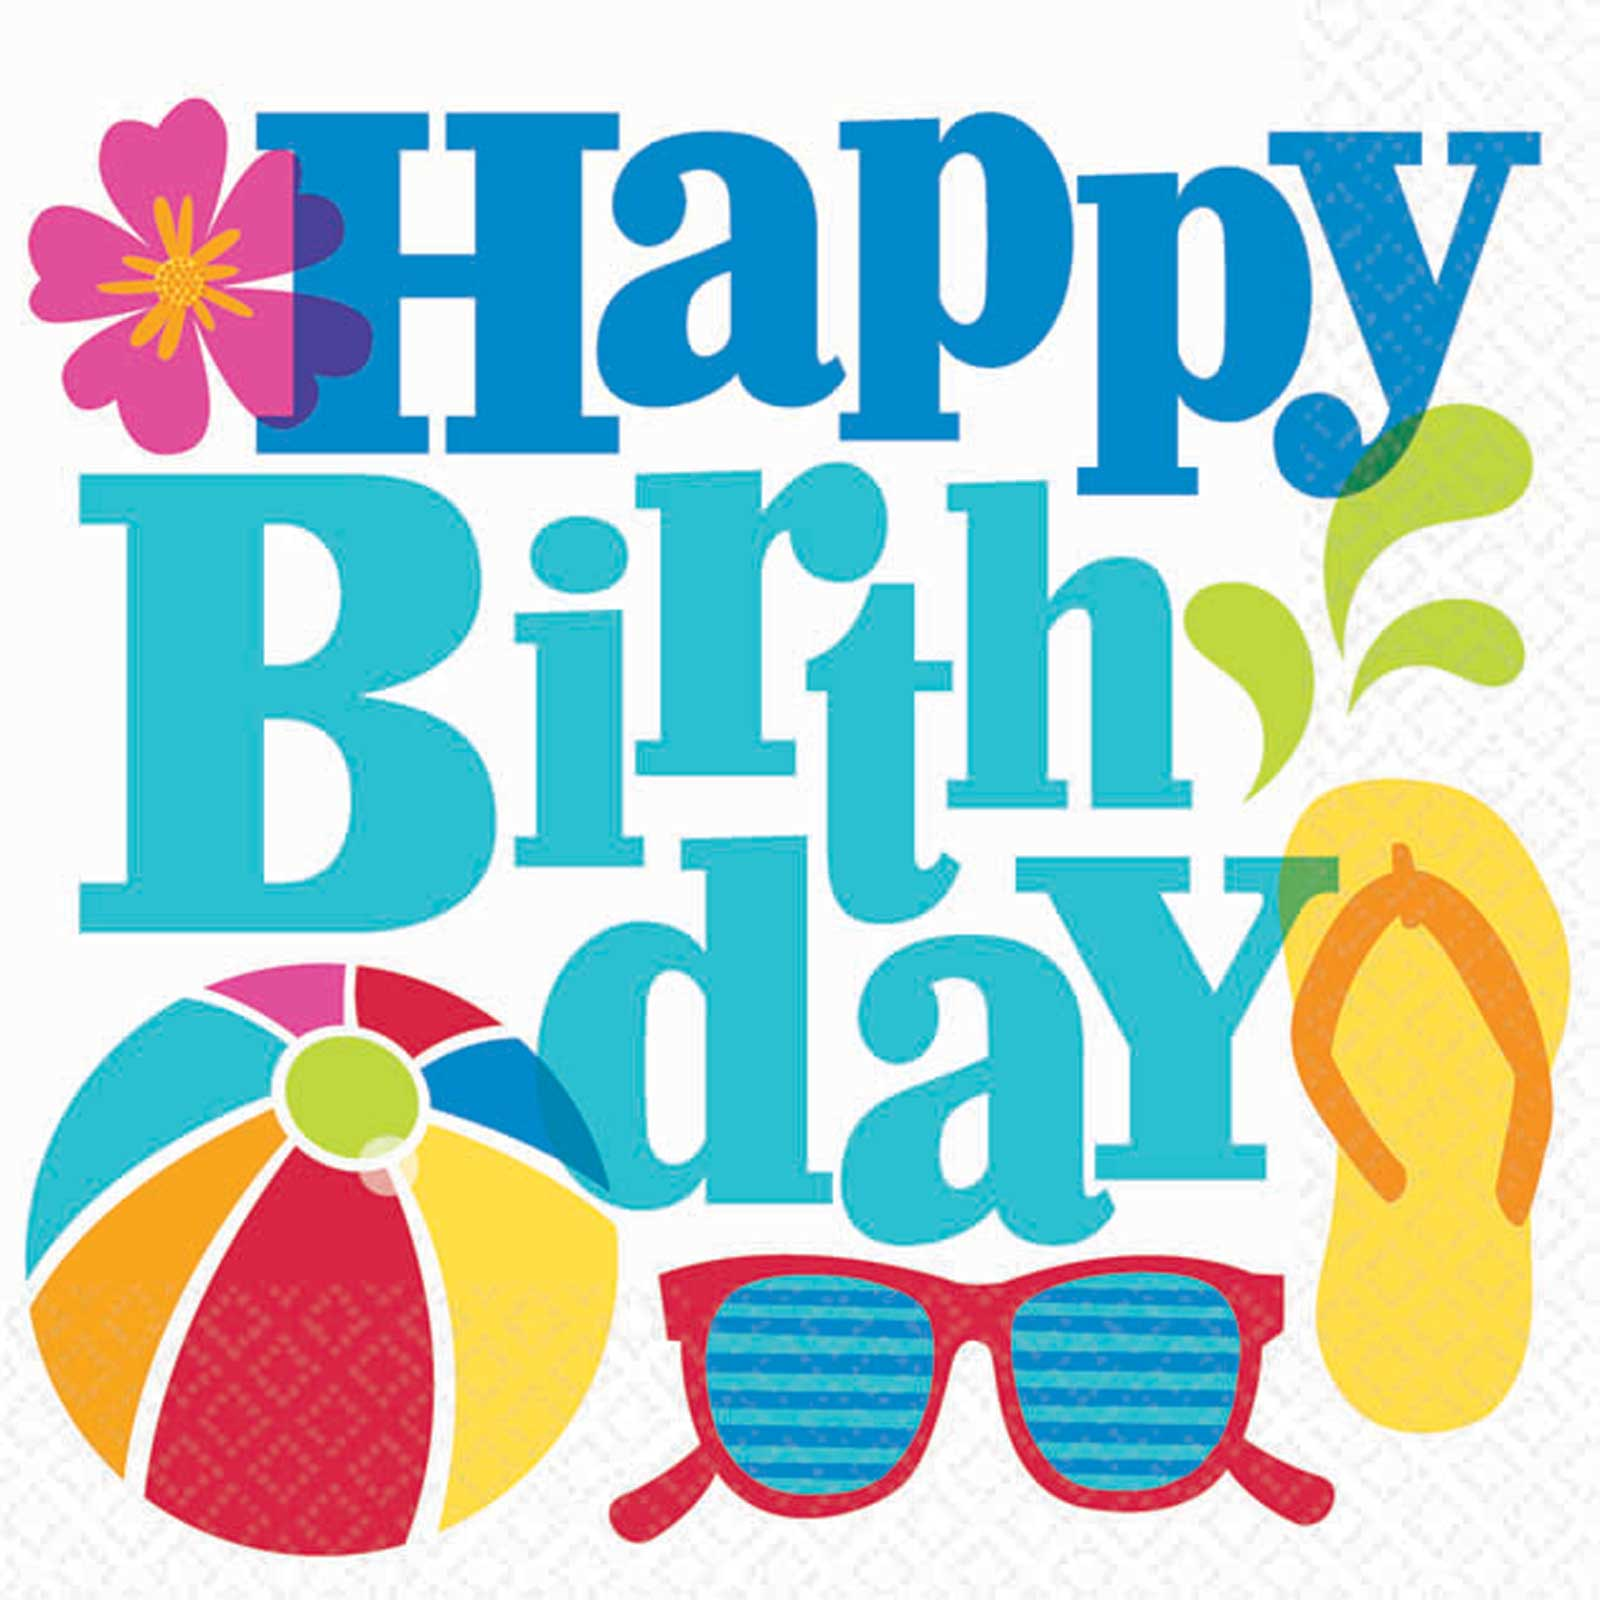 Another august birthday clipart image black and white stock Happy August Cliparts - Cliparts Zone image black and white stock